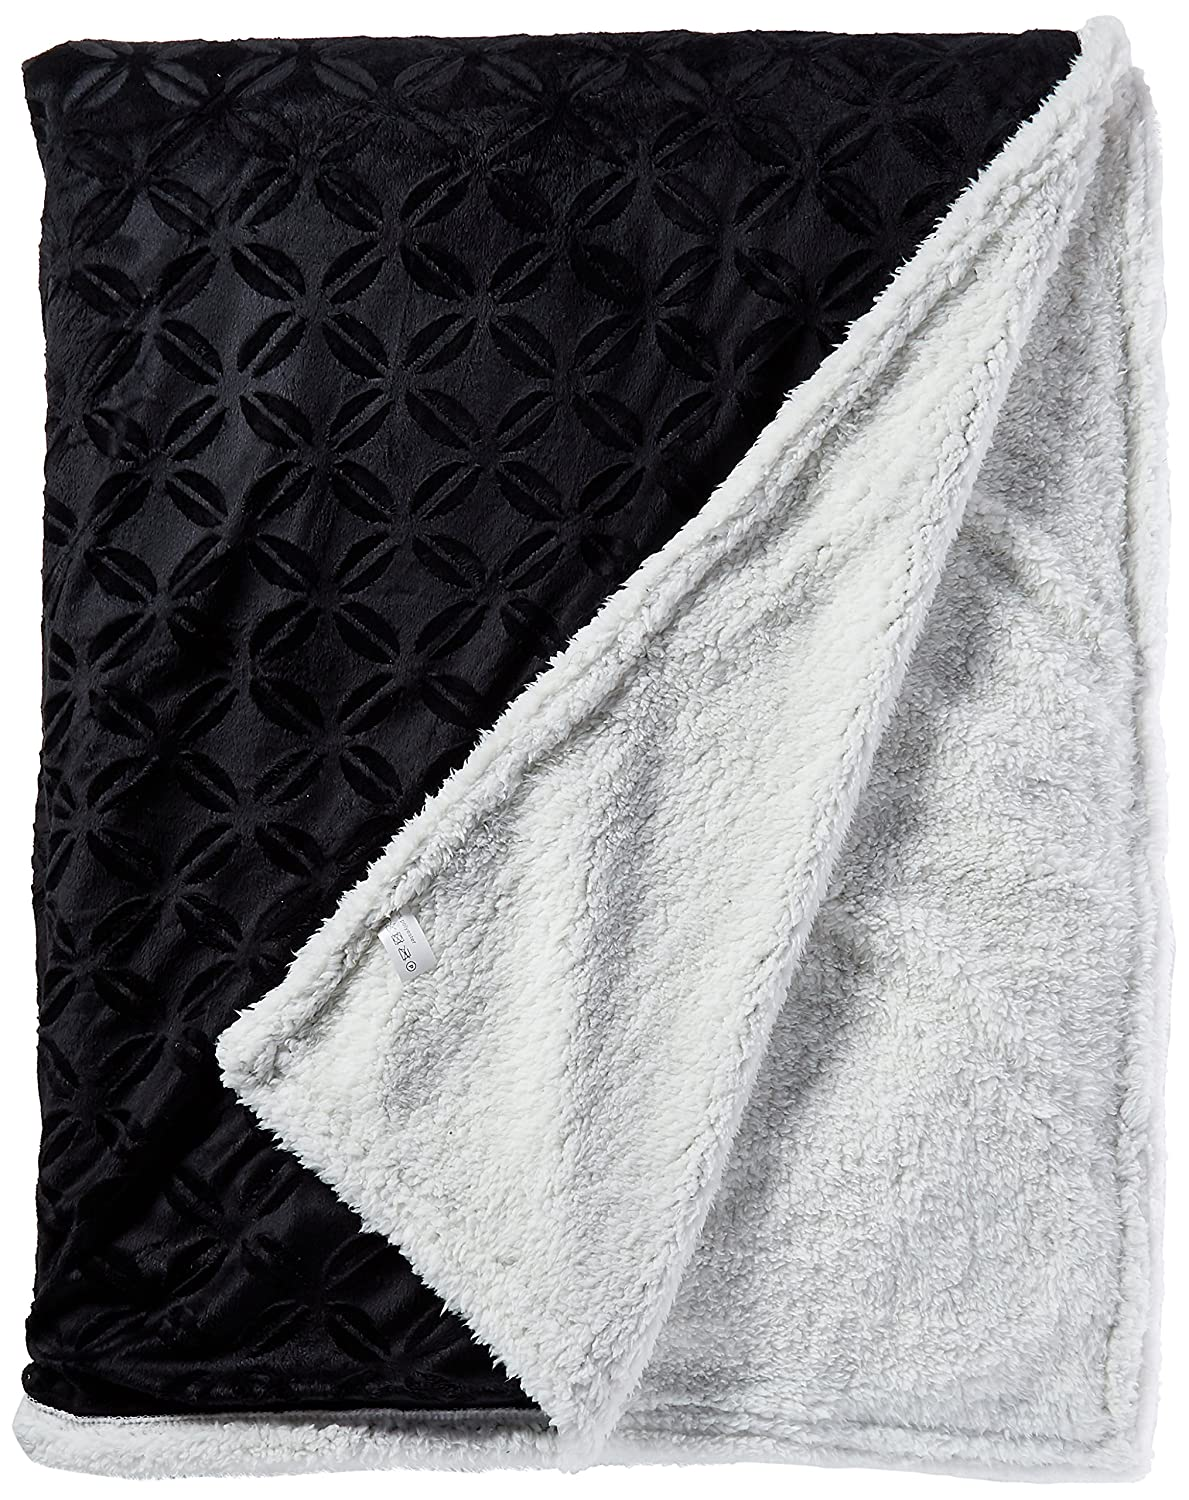 Navy 21RW-Sherpa-Fantasia-King-Navy King Elegant Comfort Luxury Sherpa Blanket on  Micro-Sherpa Ultra Plush Blanket